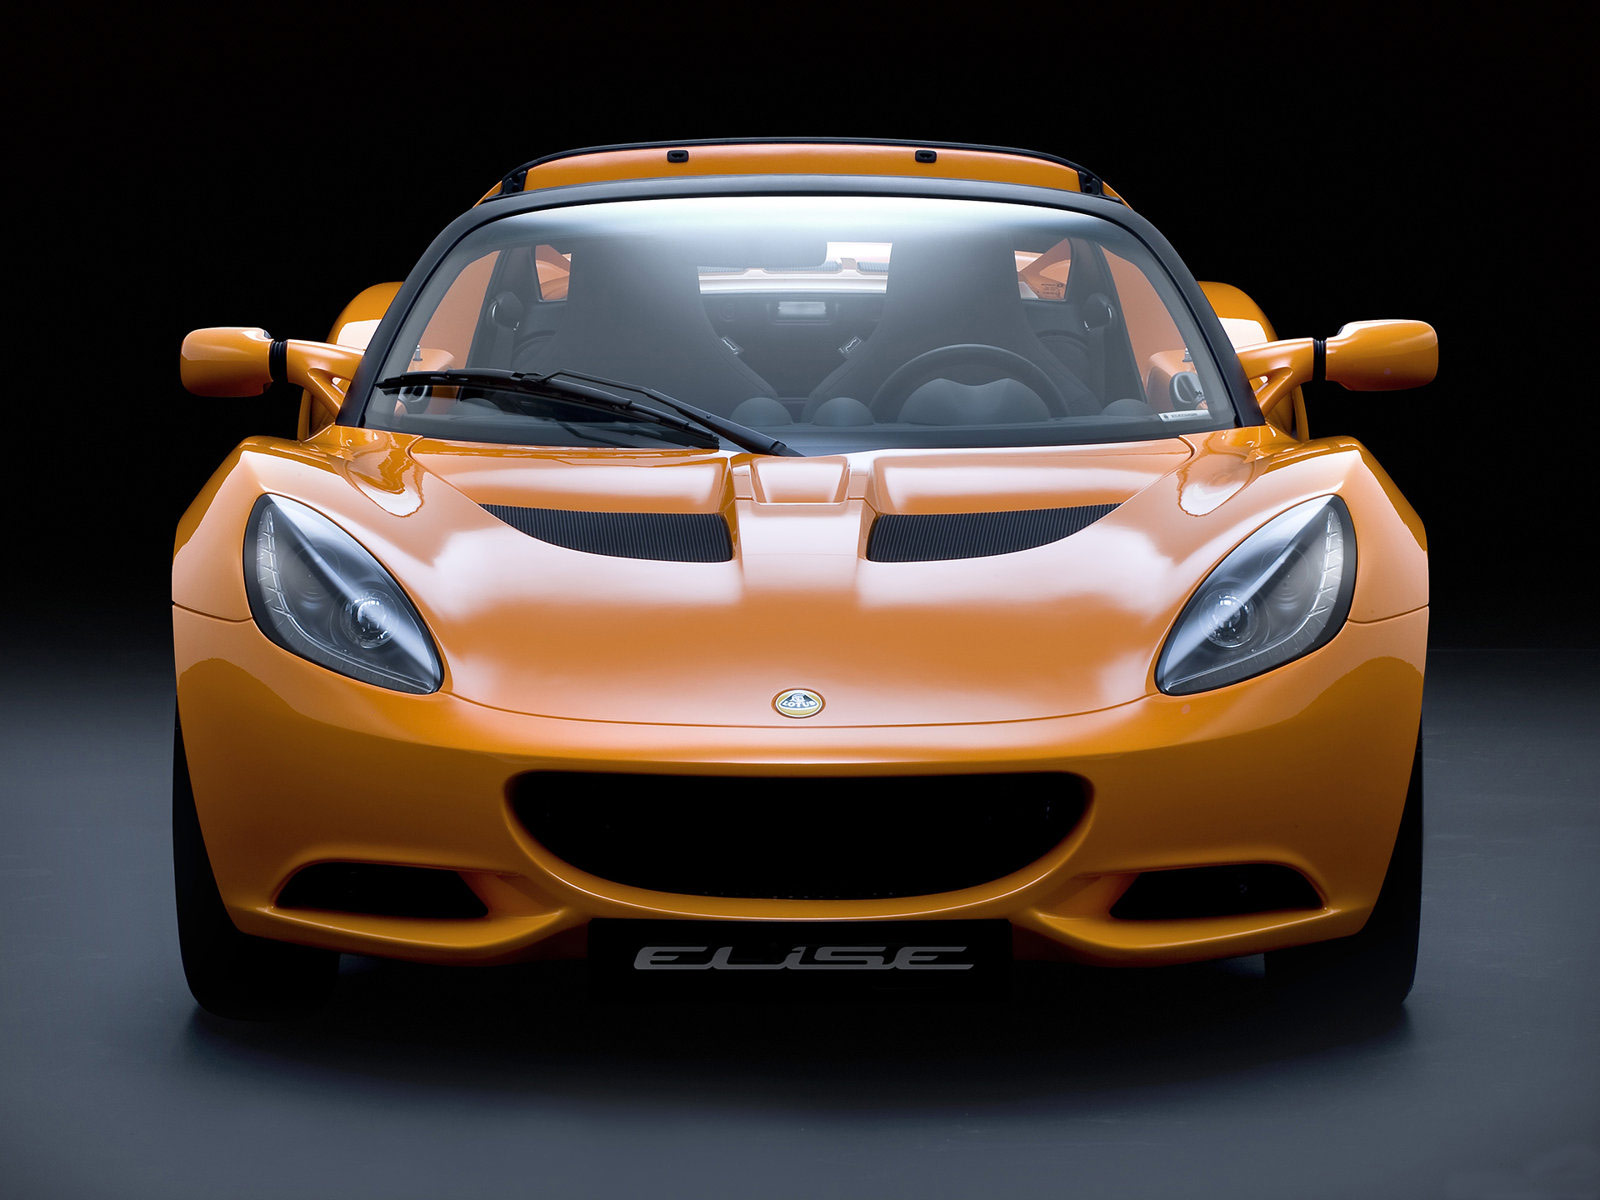 Lotus-Elise-for-Desktop-wallpaper-wp5602111